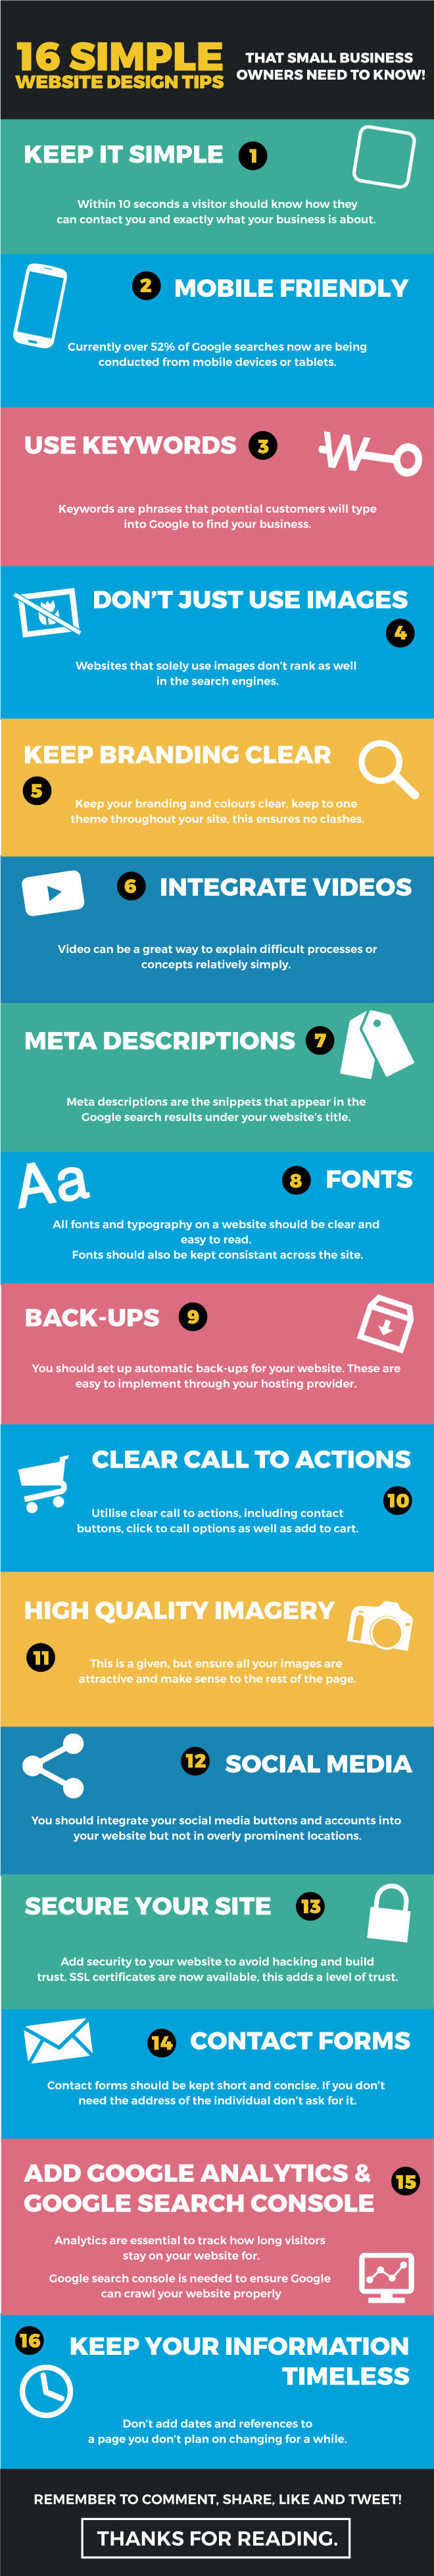 web design tips My Local Services